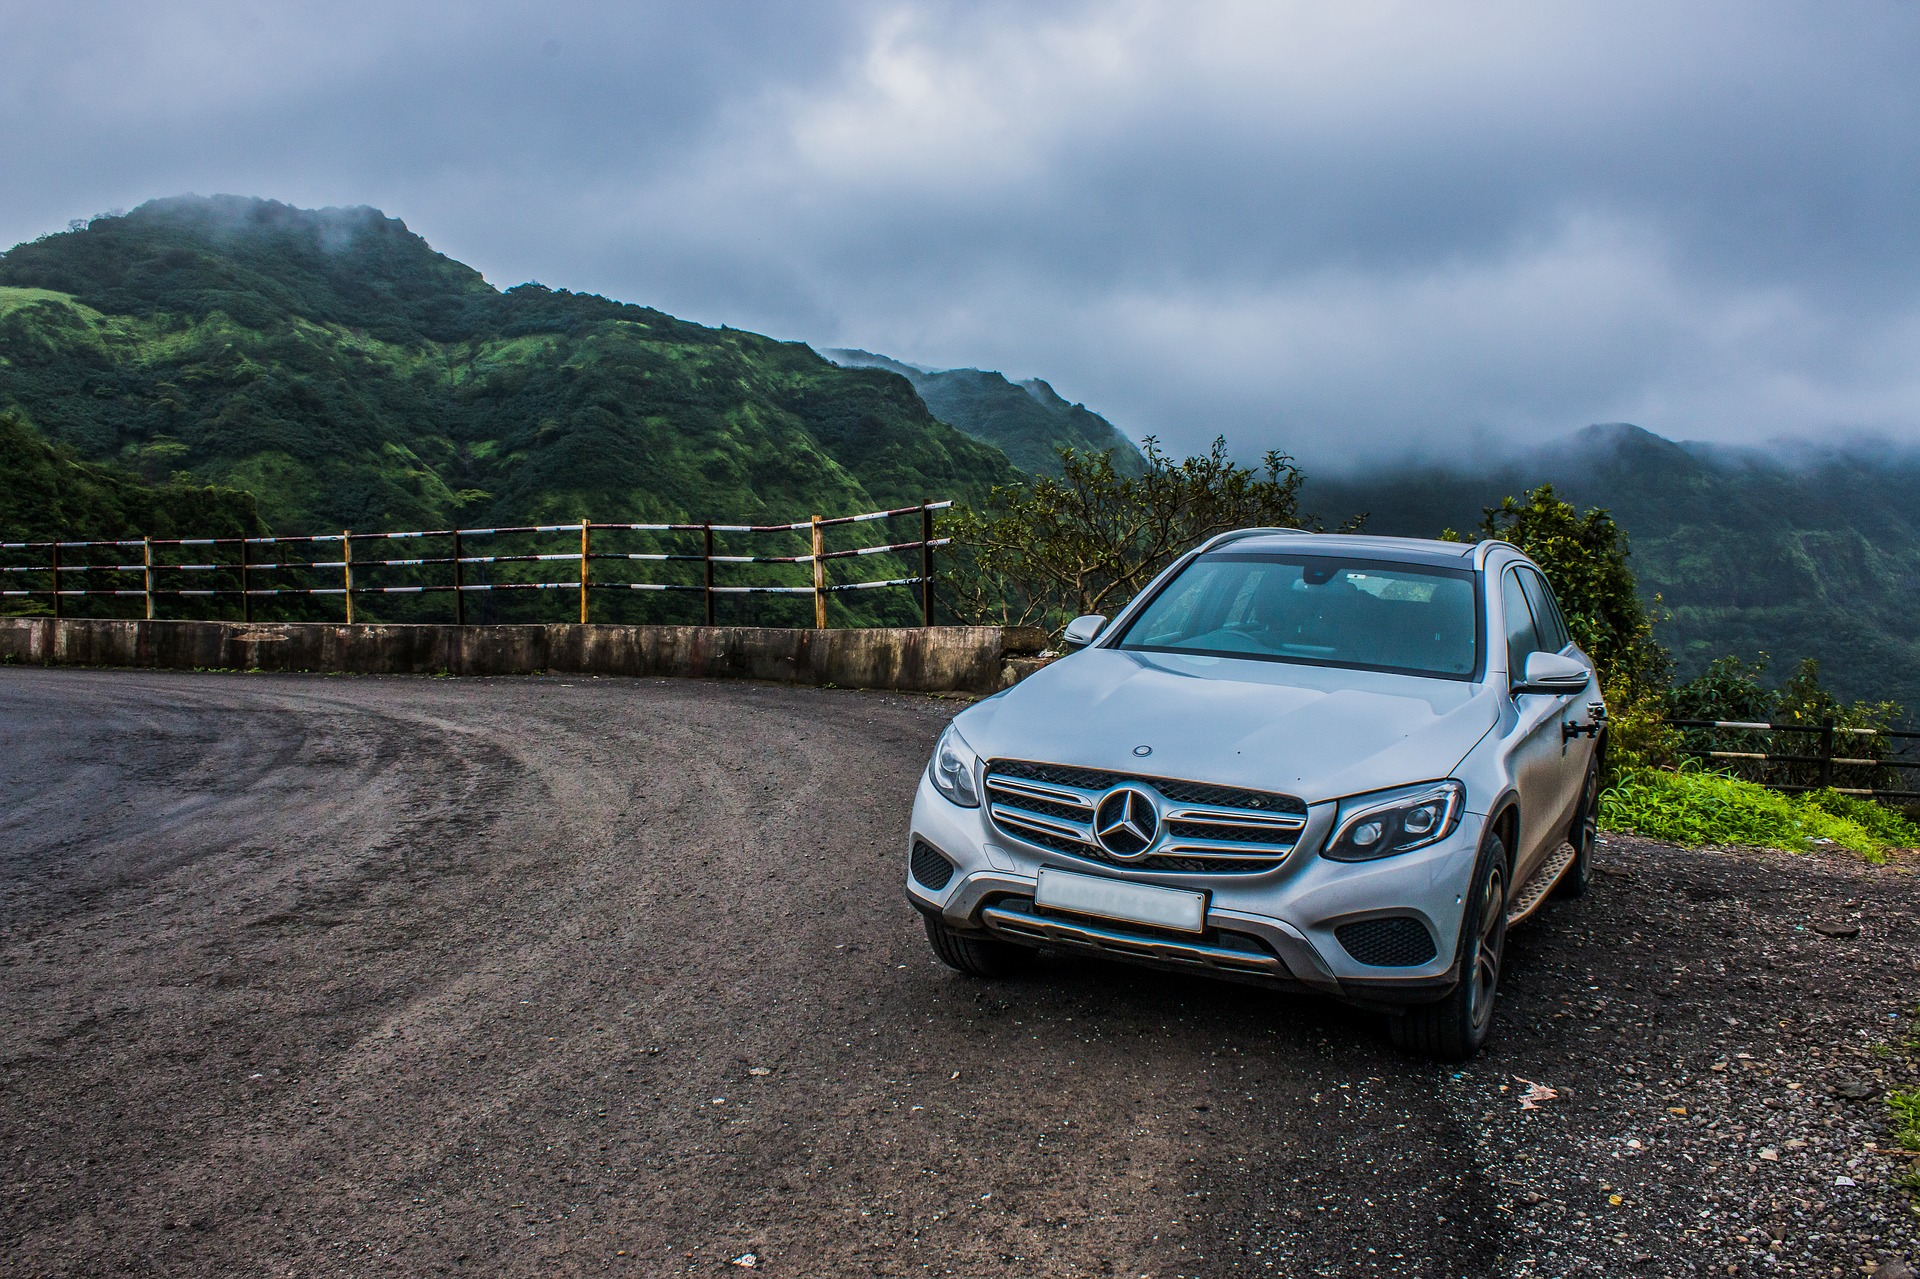 Mercedes Benz GLA vs GLC: What's the Difference?